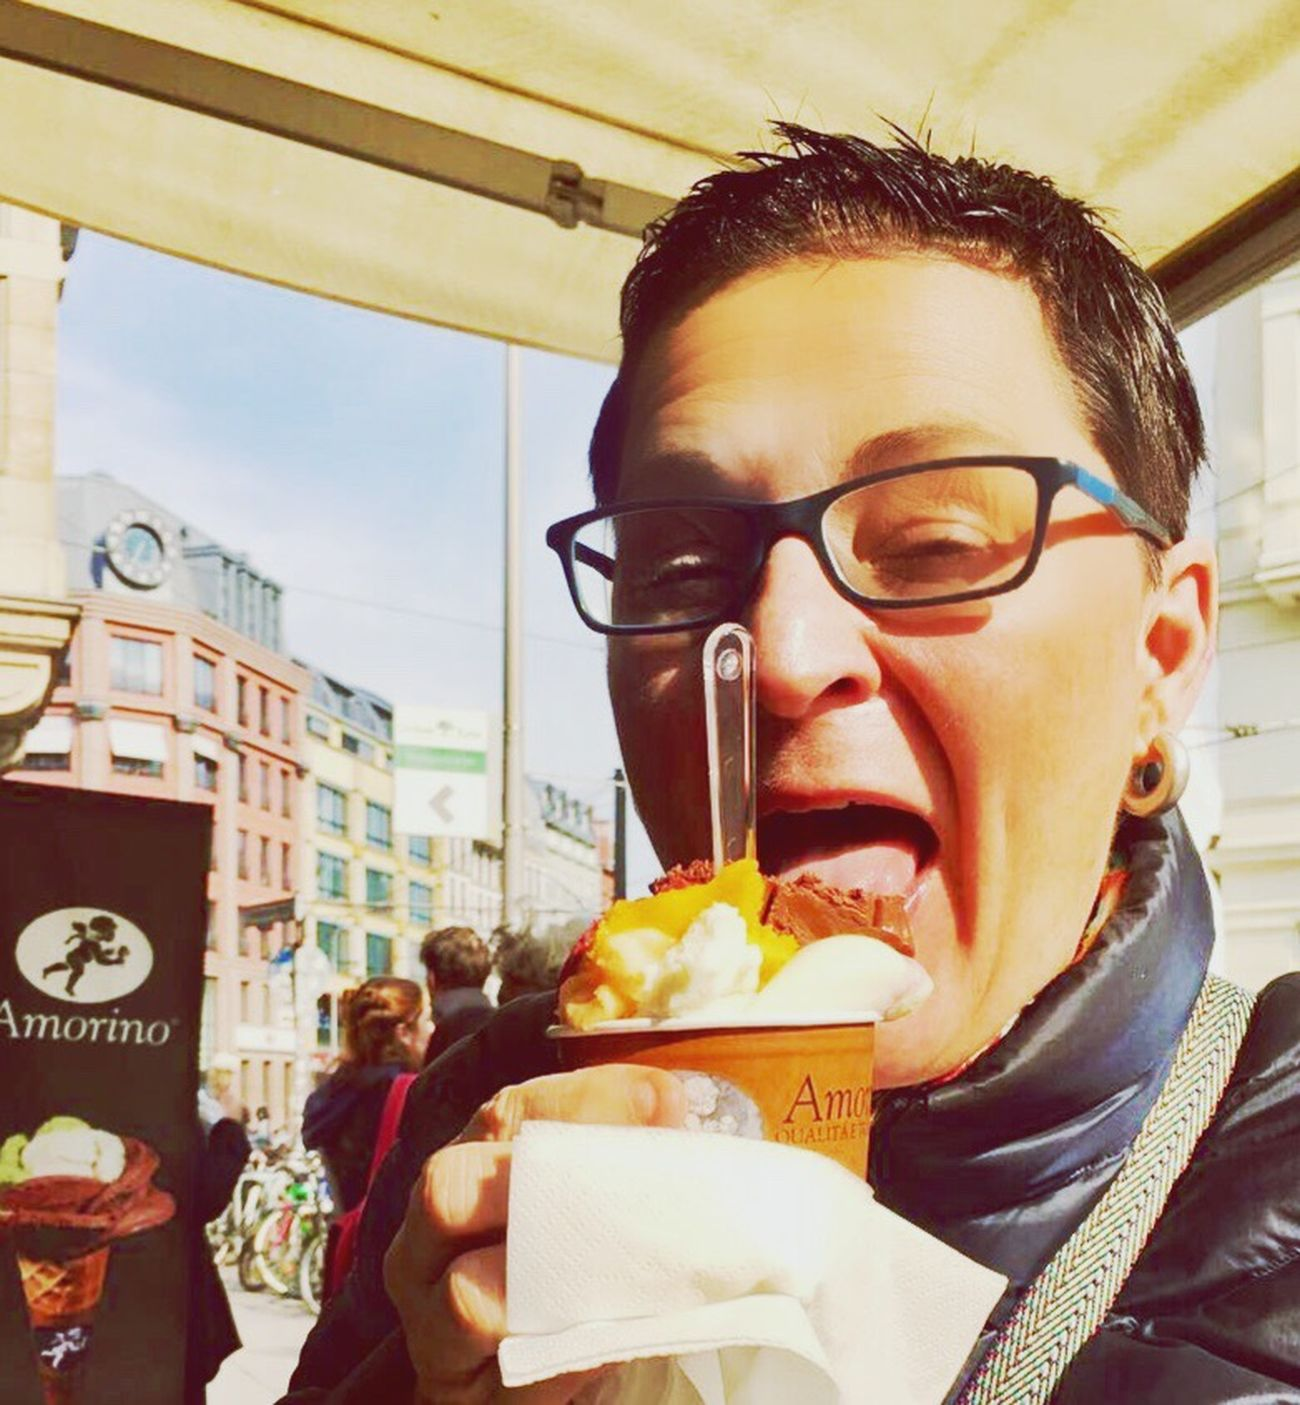 Food Eating Snack Ice Cream Yummy Sunny Spring Berln Love It Its Me Mirror Buliding Architecture Sommergefühle